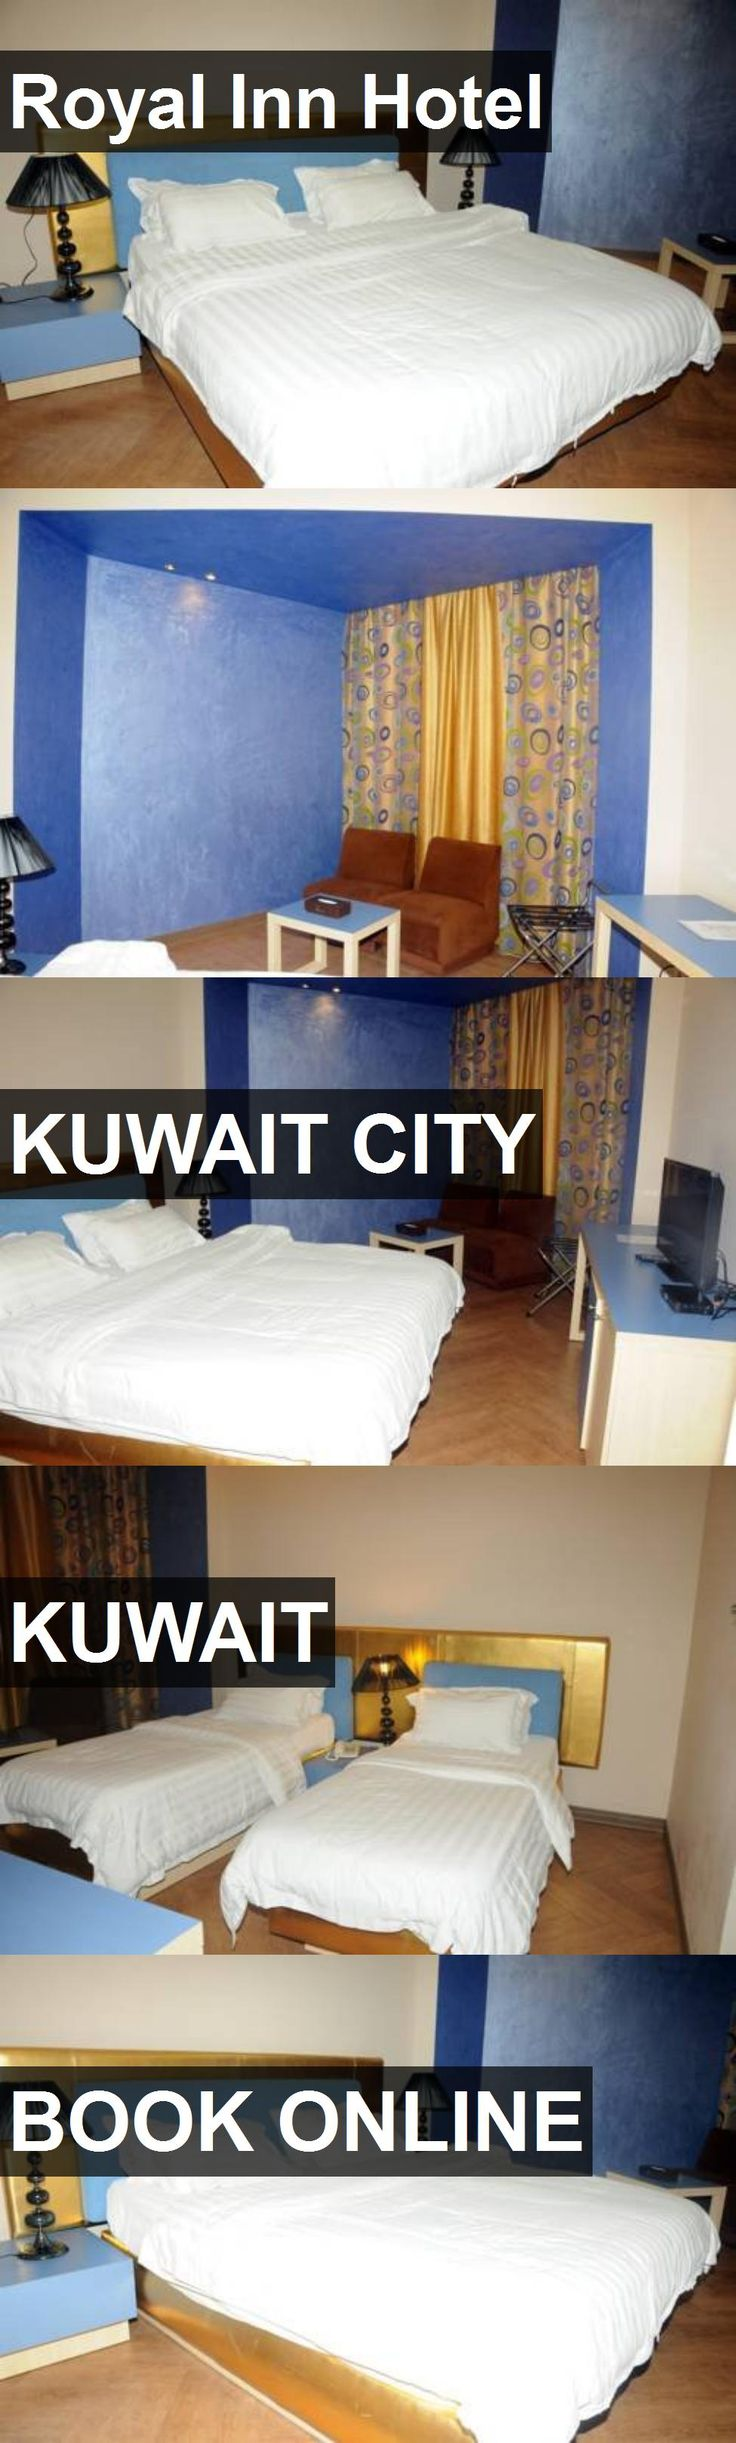 Royal Inn Hotel in Kuwait City, Kuwait. For more information, photos, reviews and best prices please follow the link. #Kuwait #KuwaitCity #travel #vacation #hotel